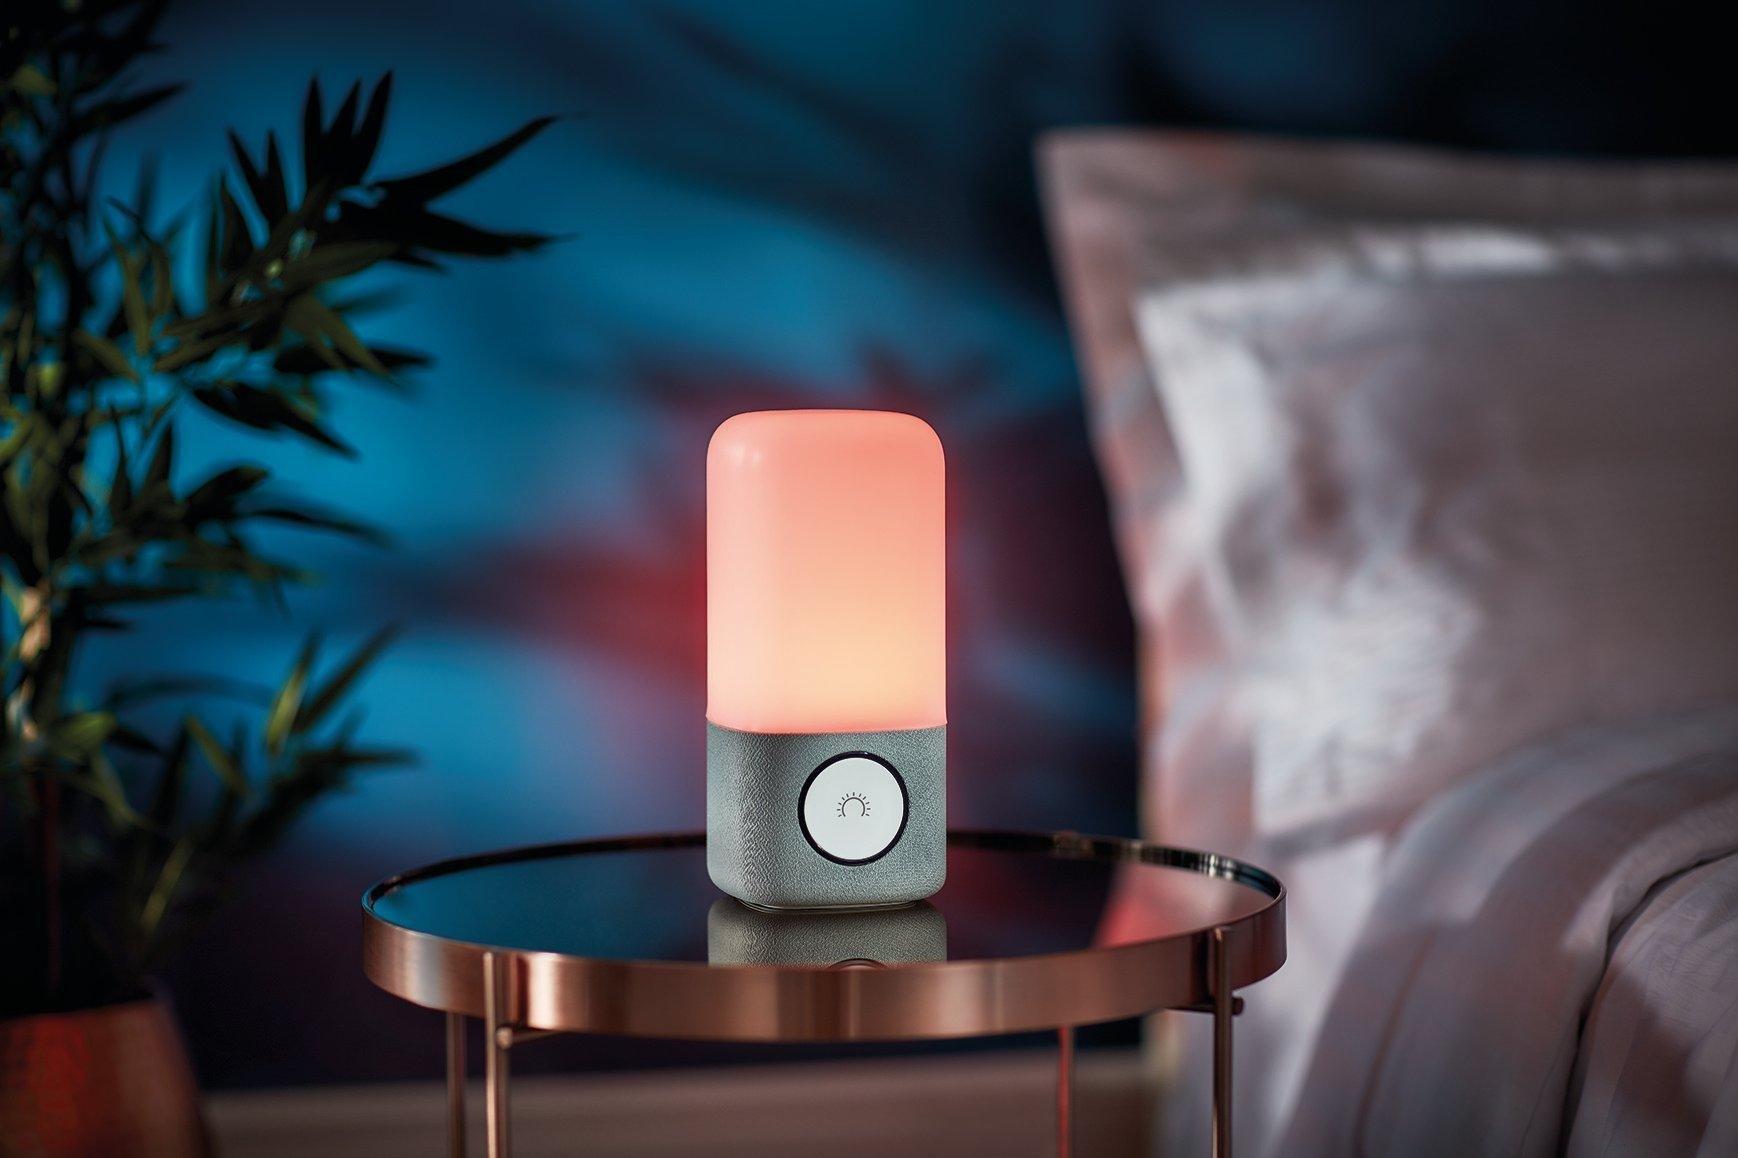 Smart bedroom lighting for light therapy and sunrise simulation